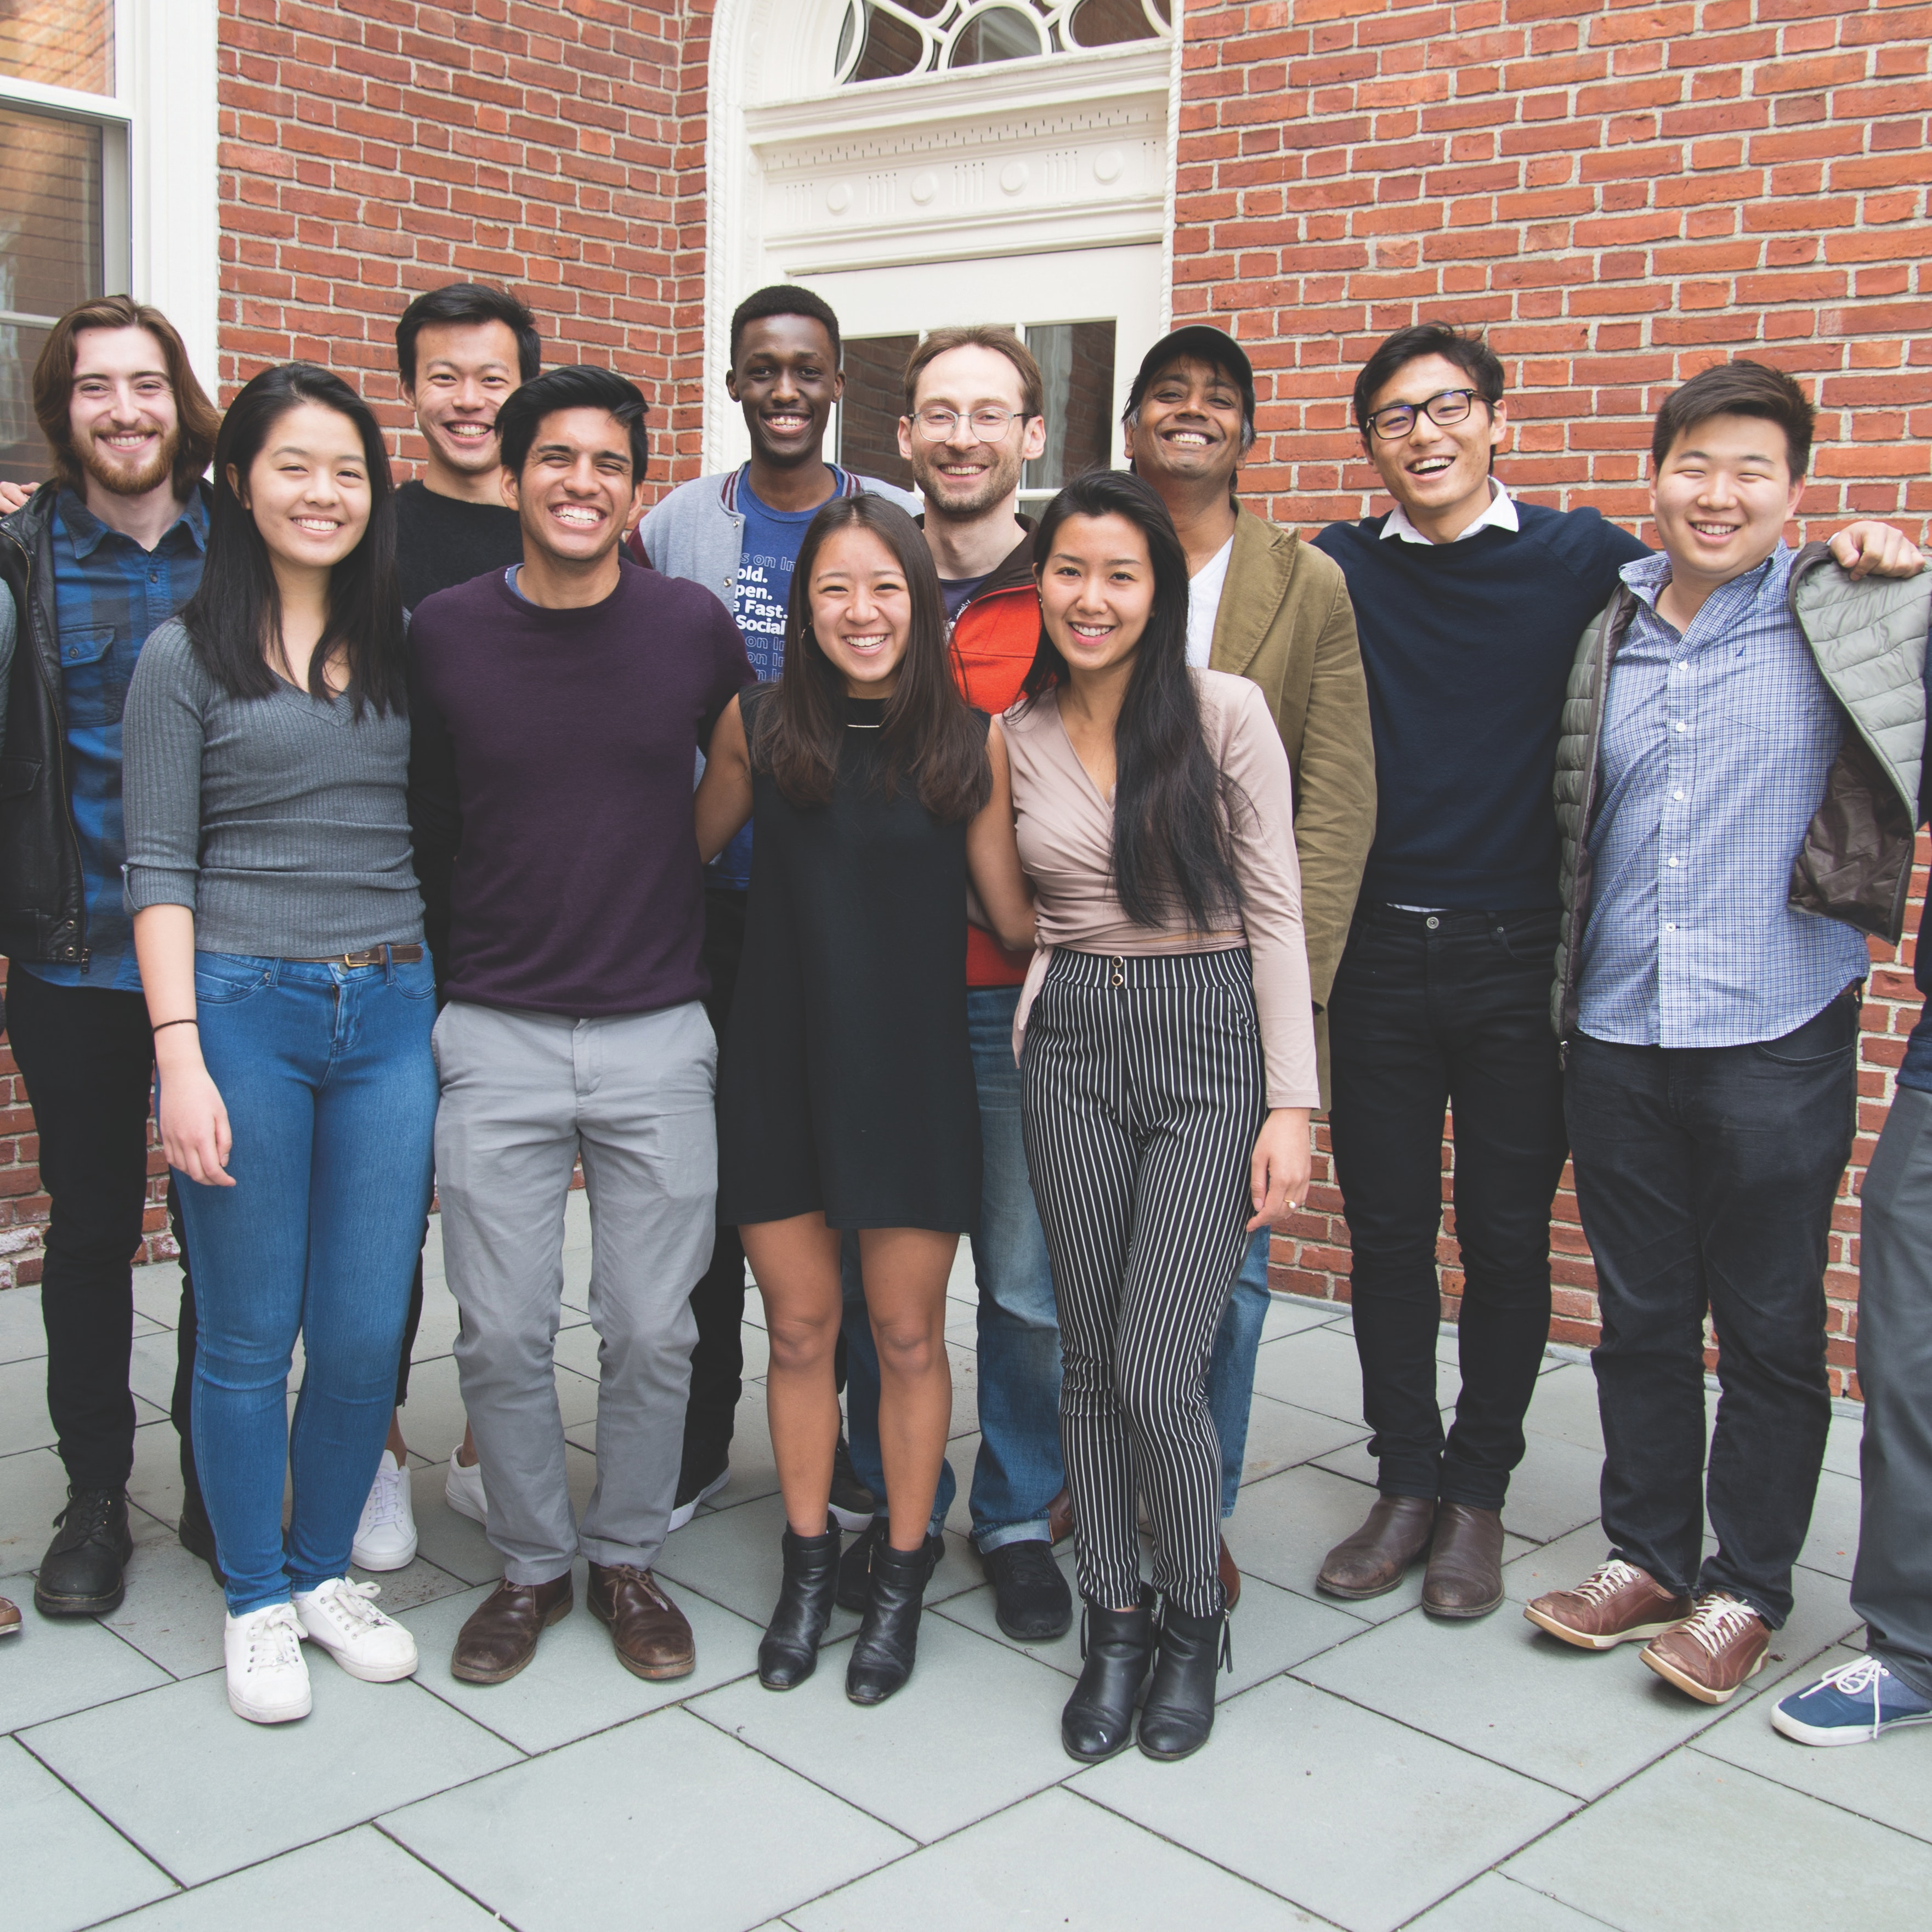 Radcliffe fellows posing in group photo with undergraduates of the Radcliffe Research Partnership program